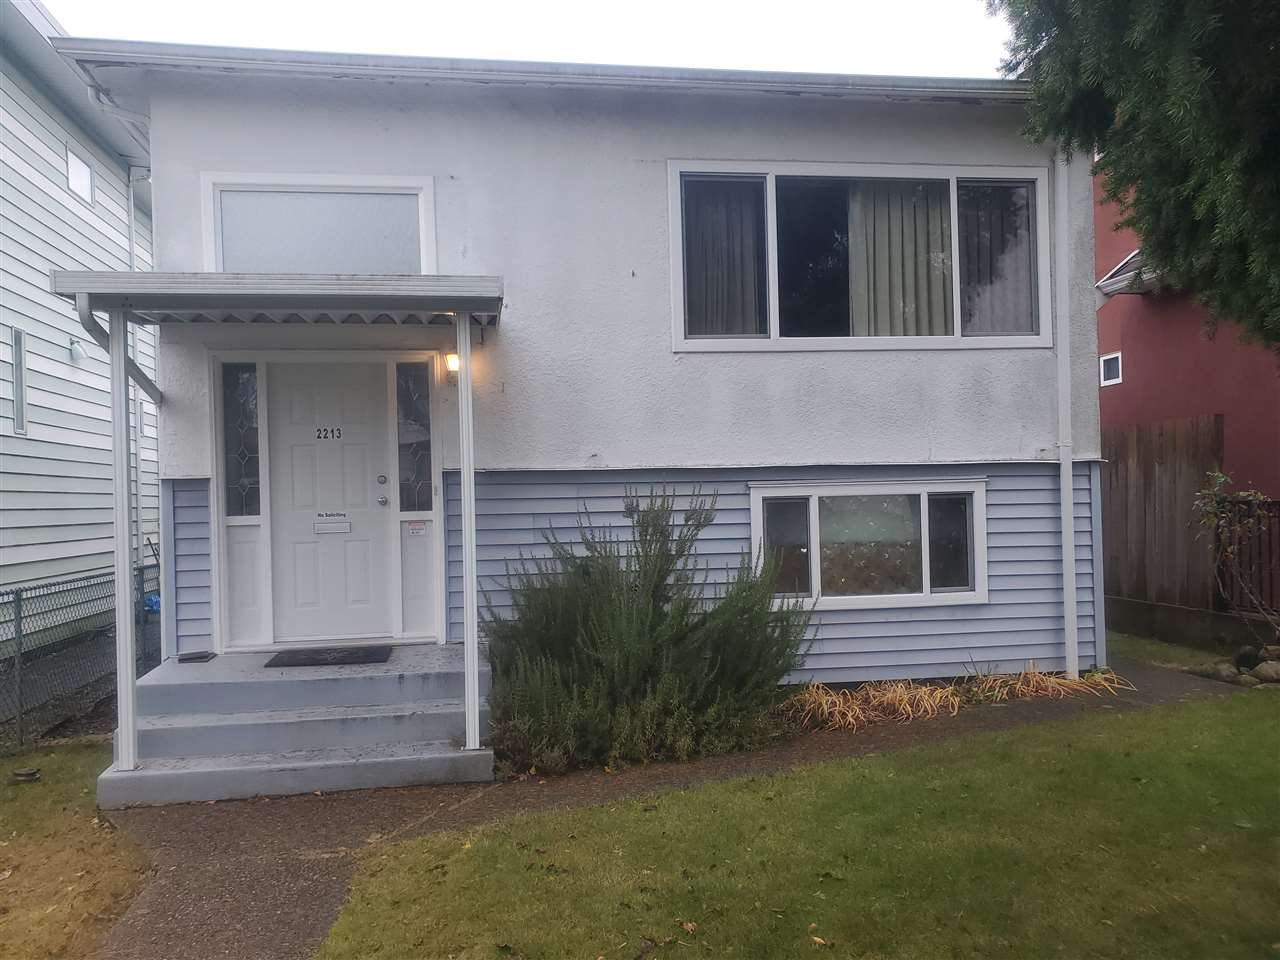 2213 NEWPORT AVENUE - Fraserview VE House/Single Family for sale, 4 Bedrooms (R2519340)